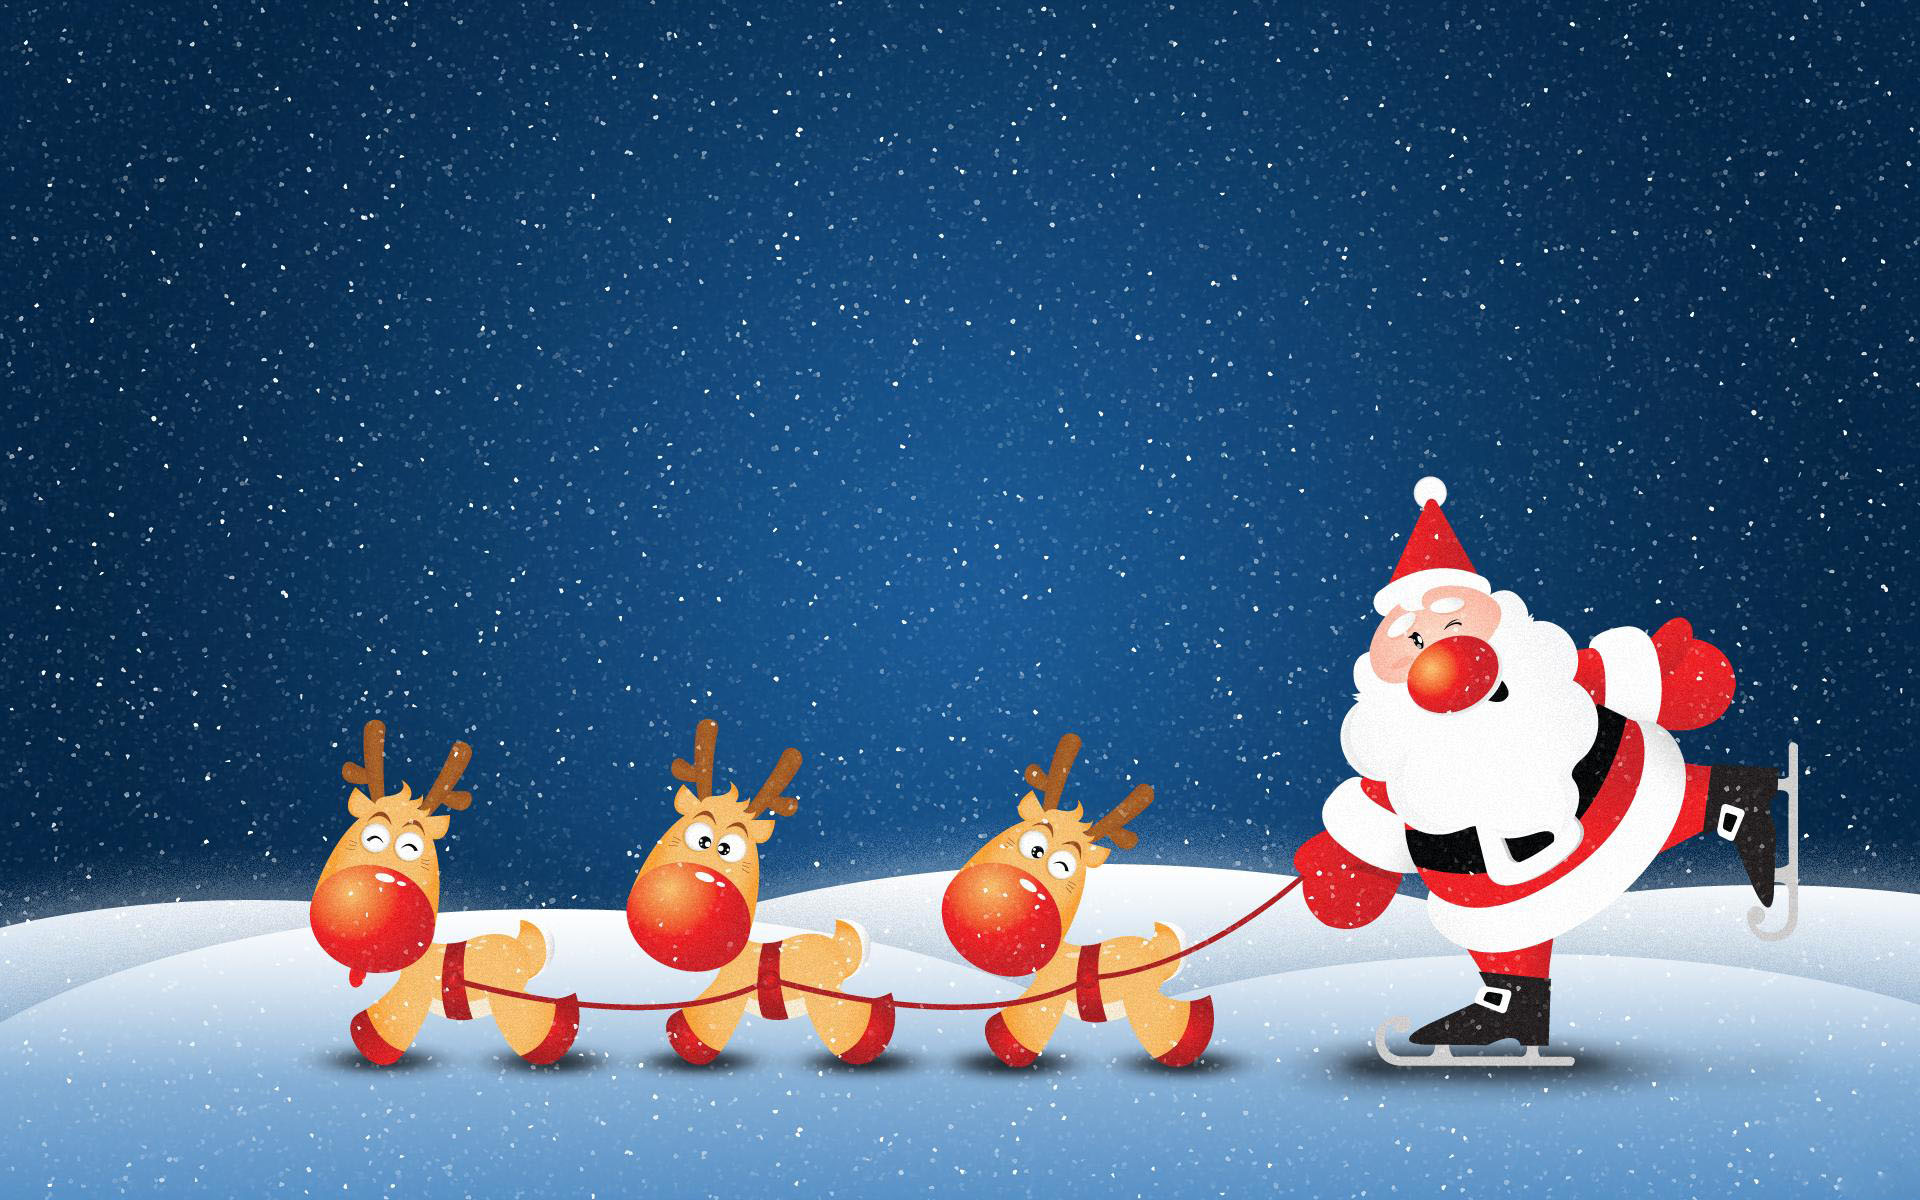 Collection of Animated Christmas Wallpaper on HDWallpapers